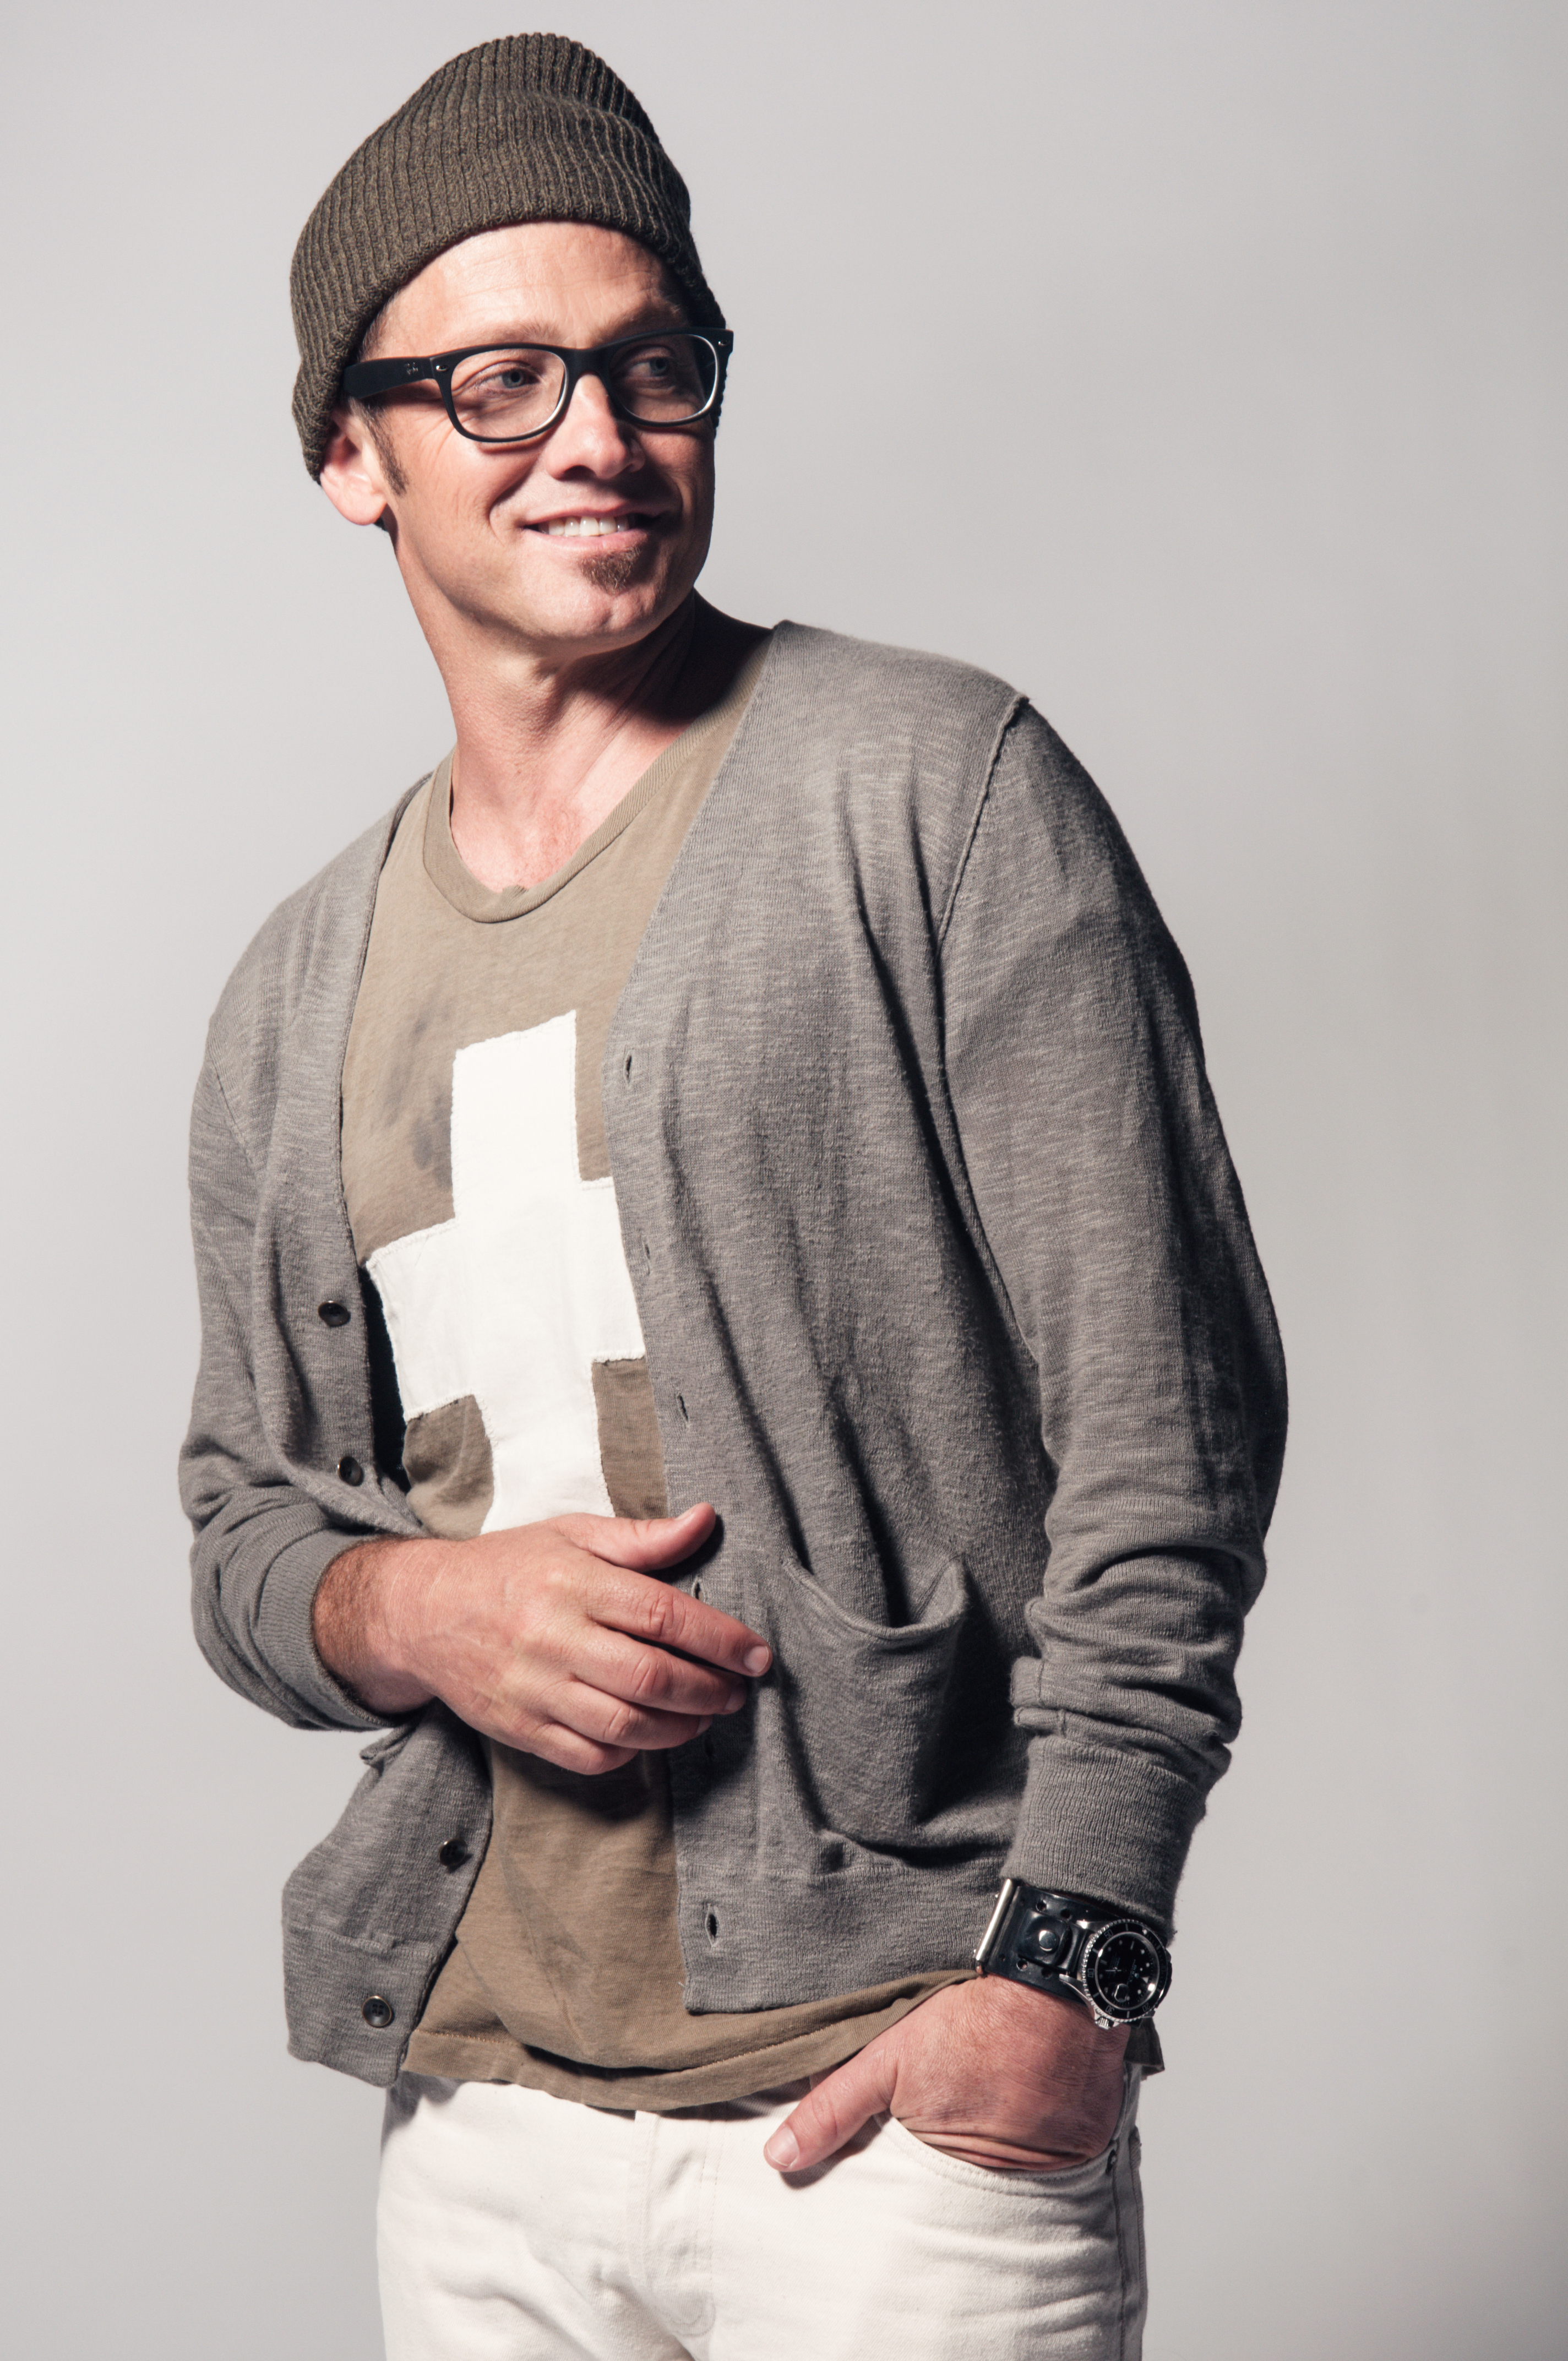 TobyMac soaring high ahead of visit to Toledo - The Blade